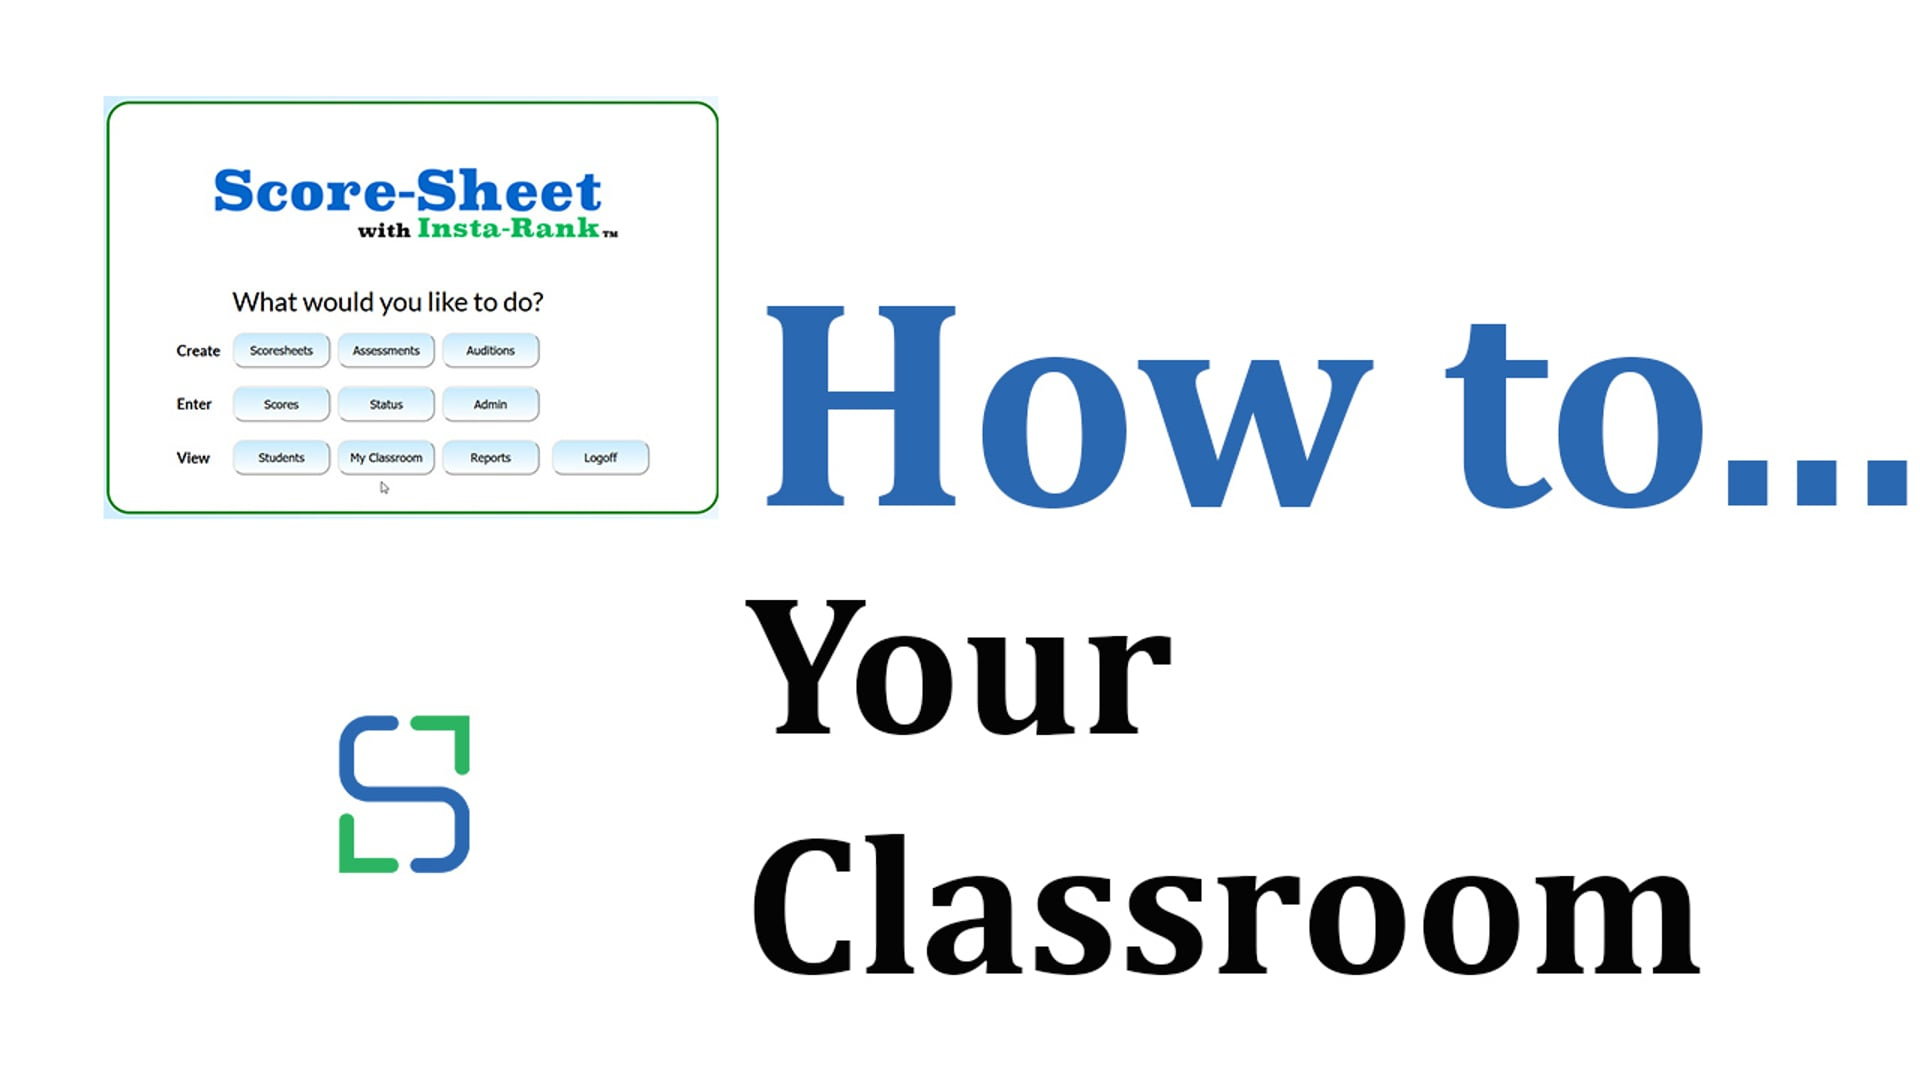 16 - YOUR CLASSROOM